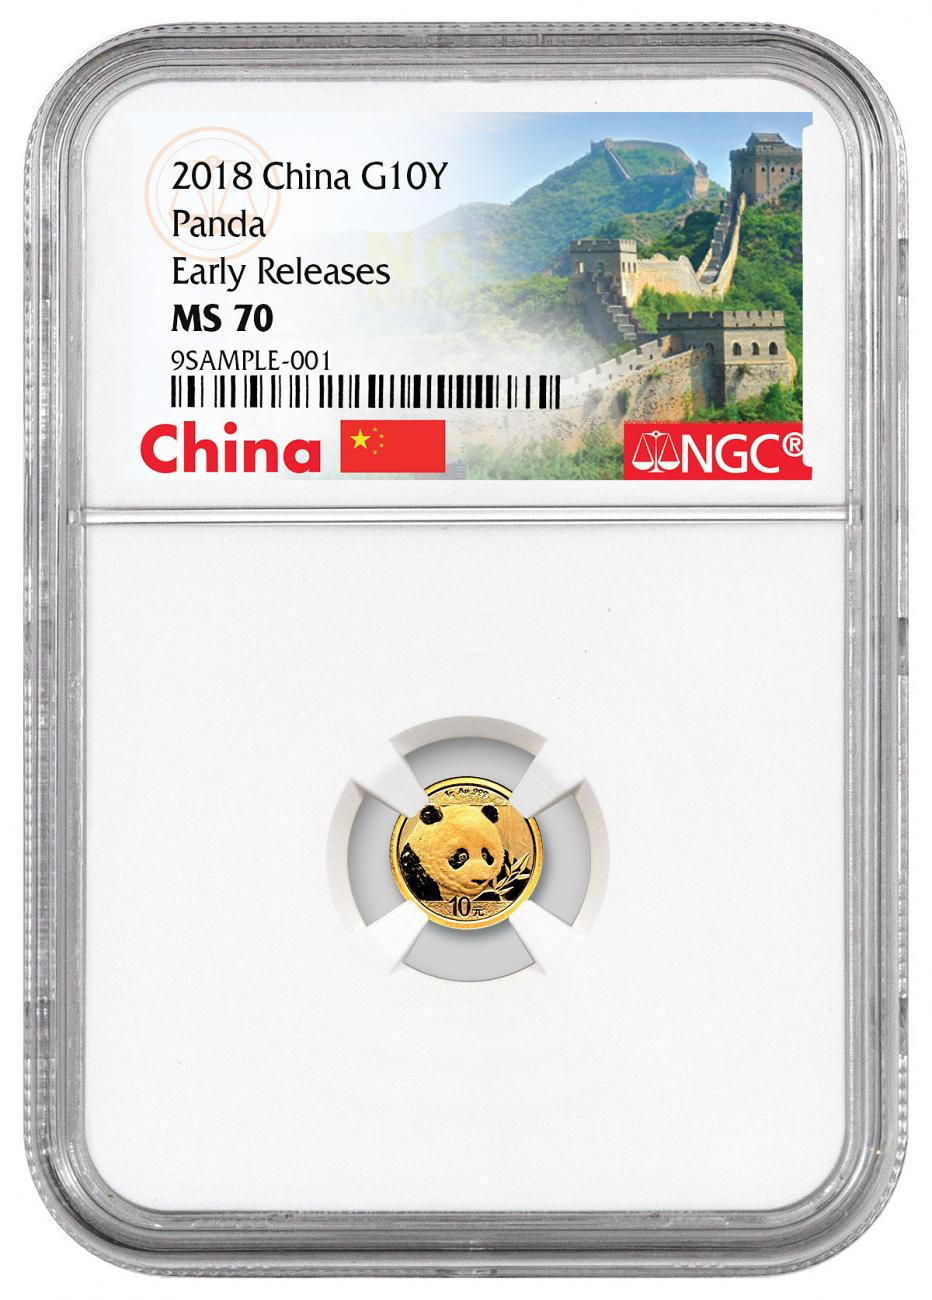 2018 China 1 g Gold Panda ¥10 Coin NGC MS70 ER Exclusive Great Wall Label